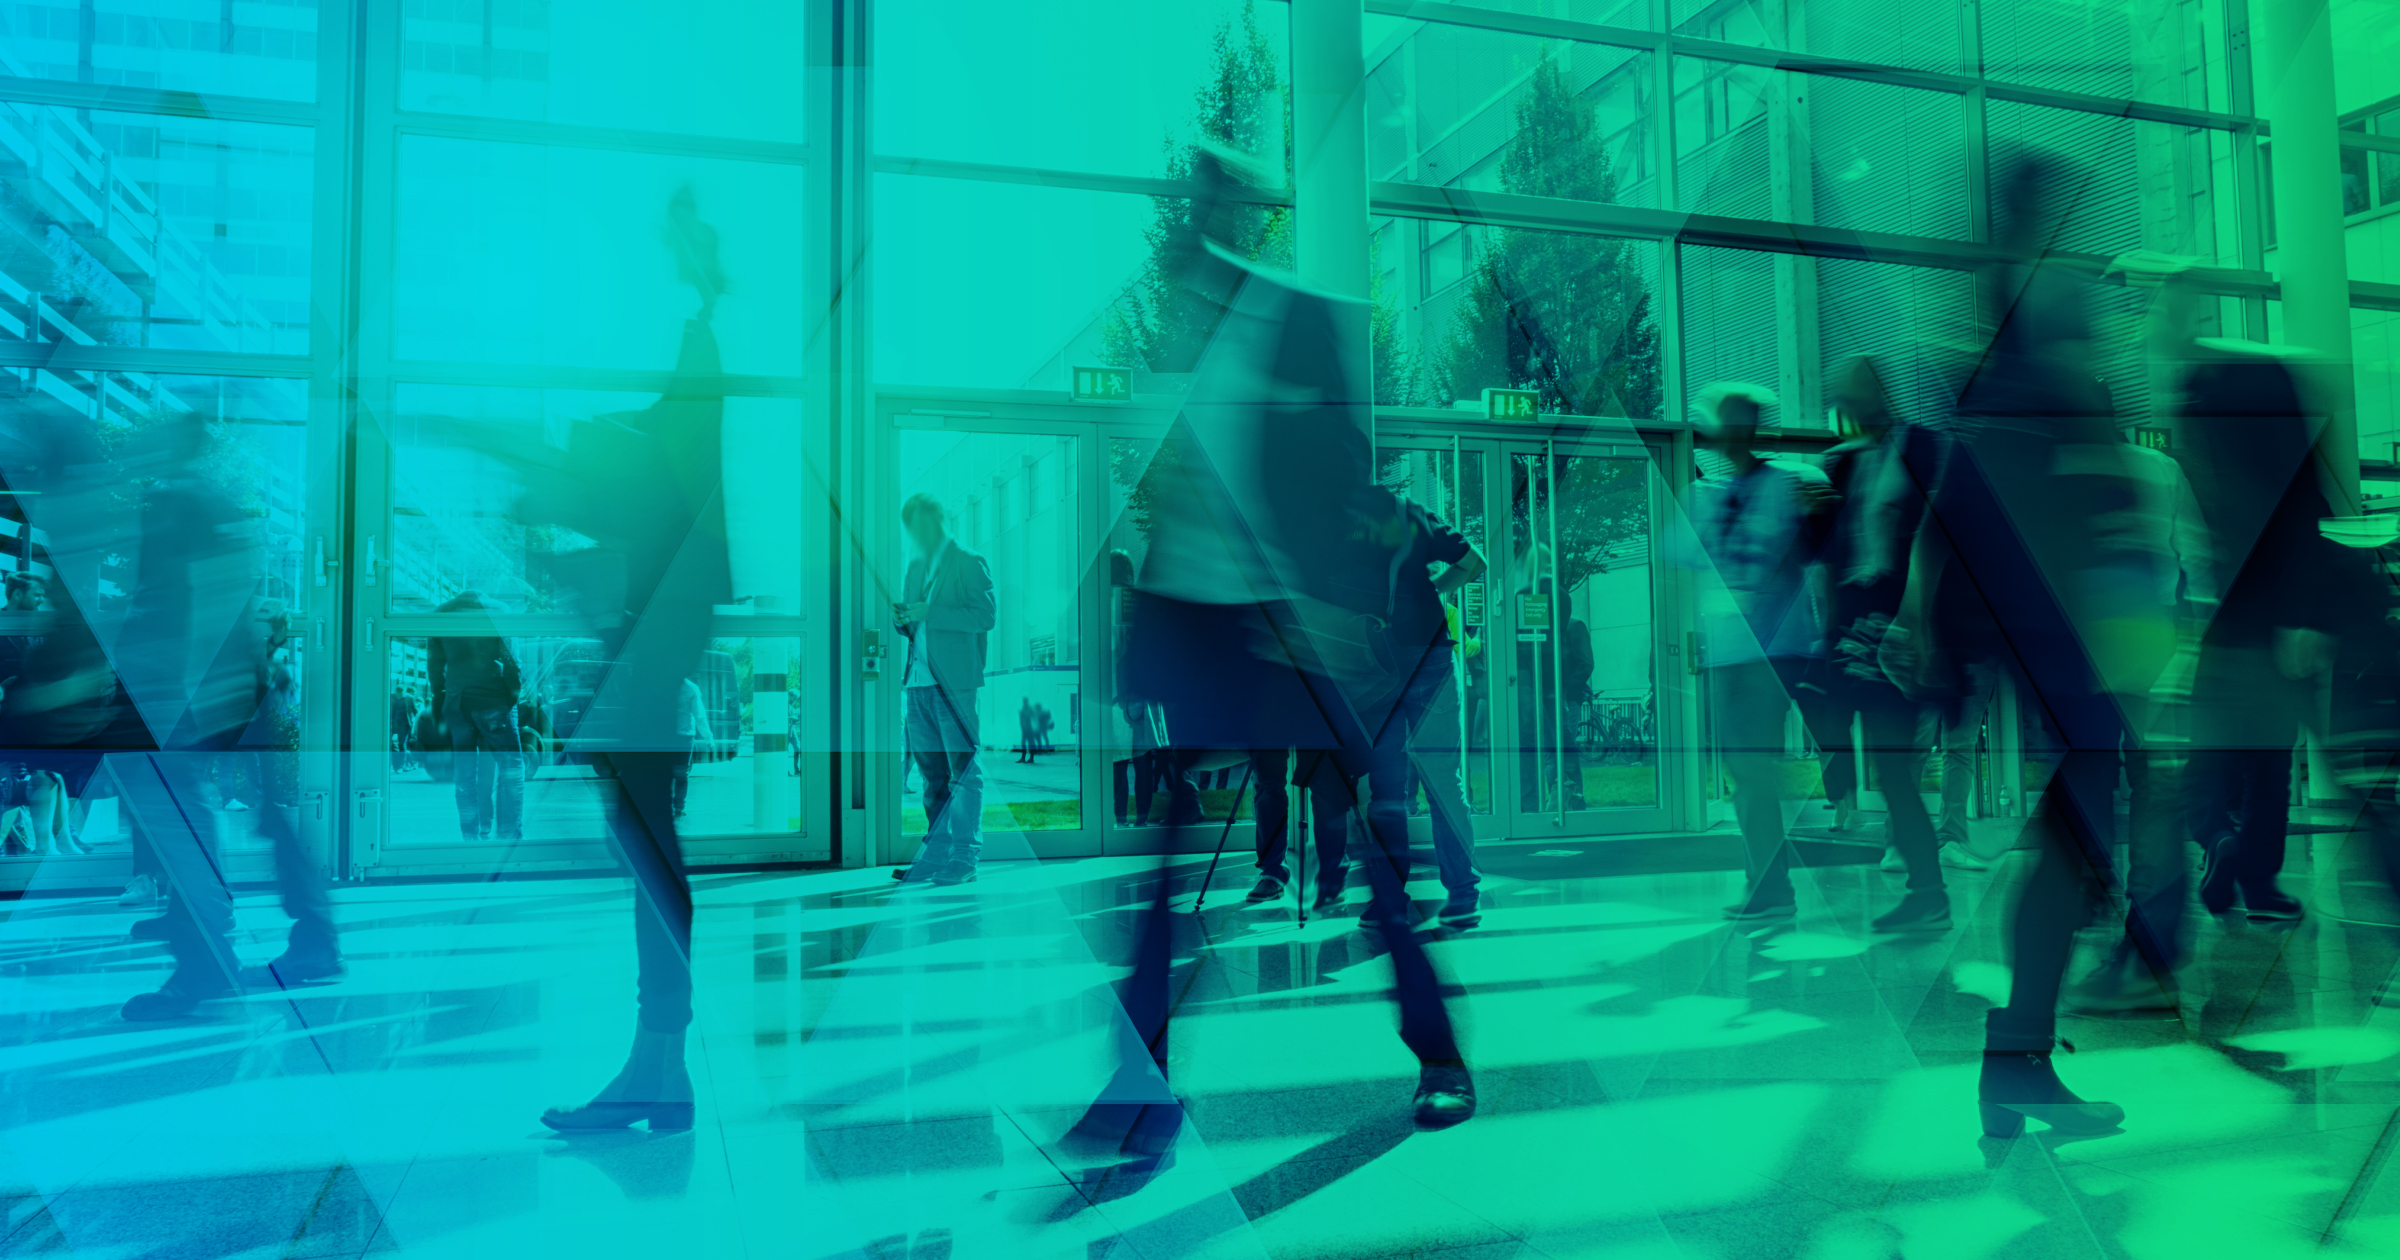 When It Comes to Culture, Does Your Company Walk the Talk?